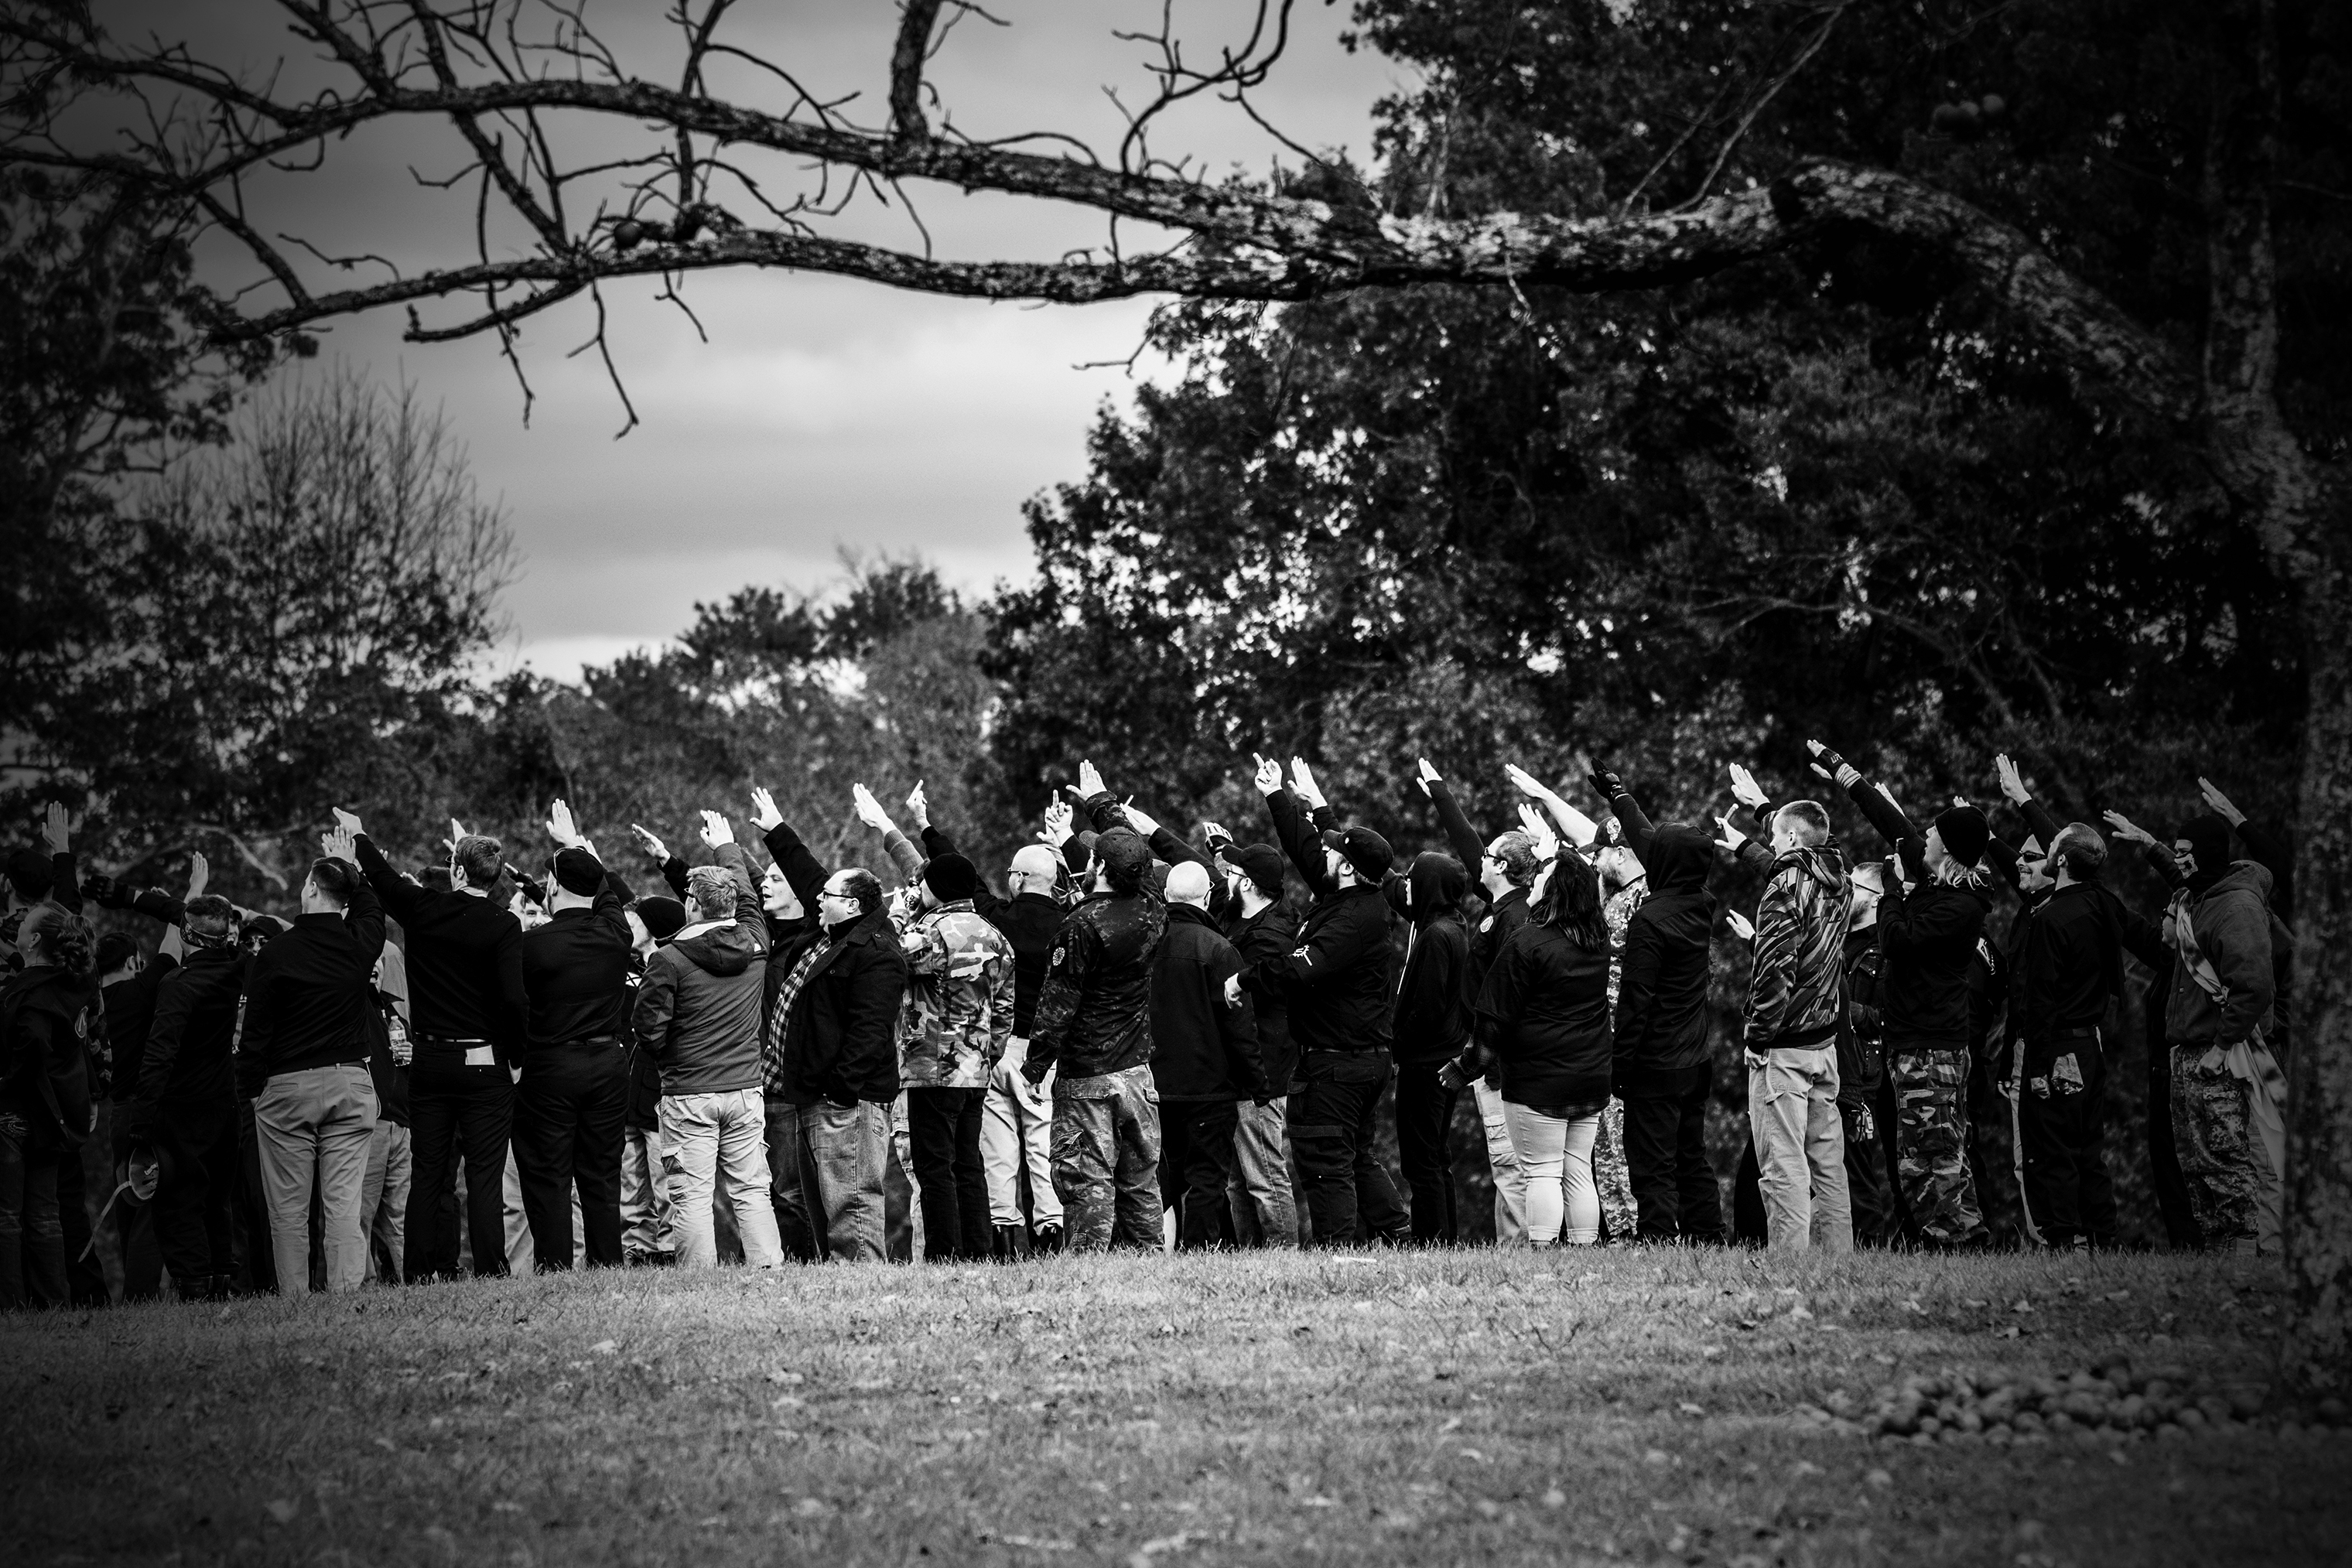 National Socialist Movement members give the Nazi salute on a hill in Henry Horton Park in Chapel Hill, Tenn., on Oct. 28, 2017.